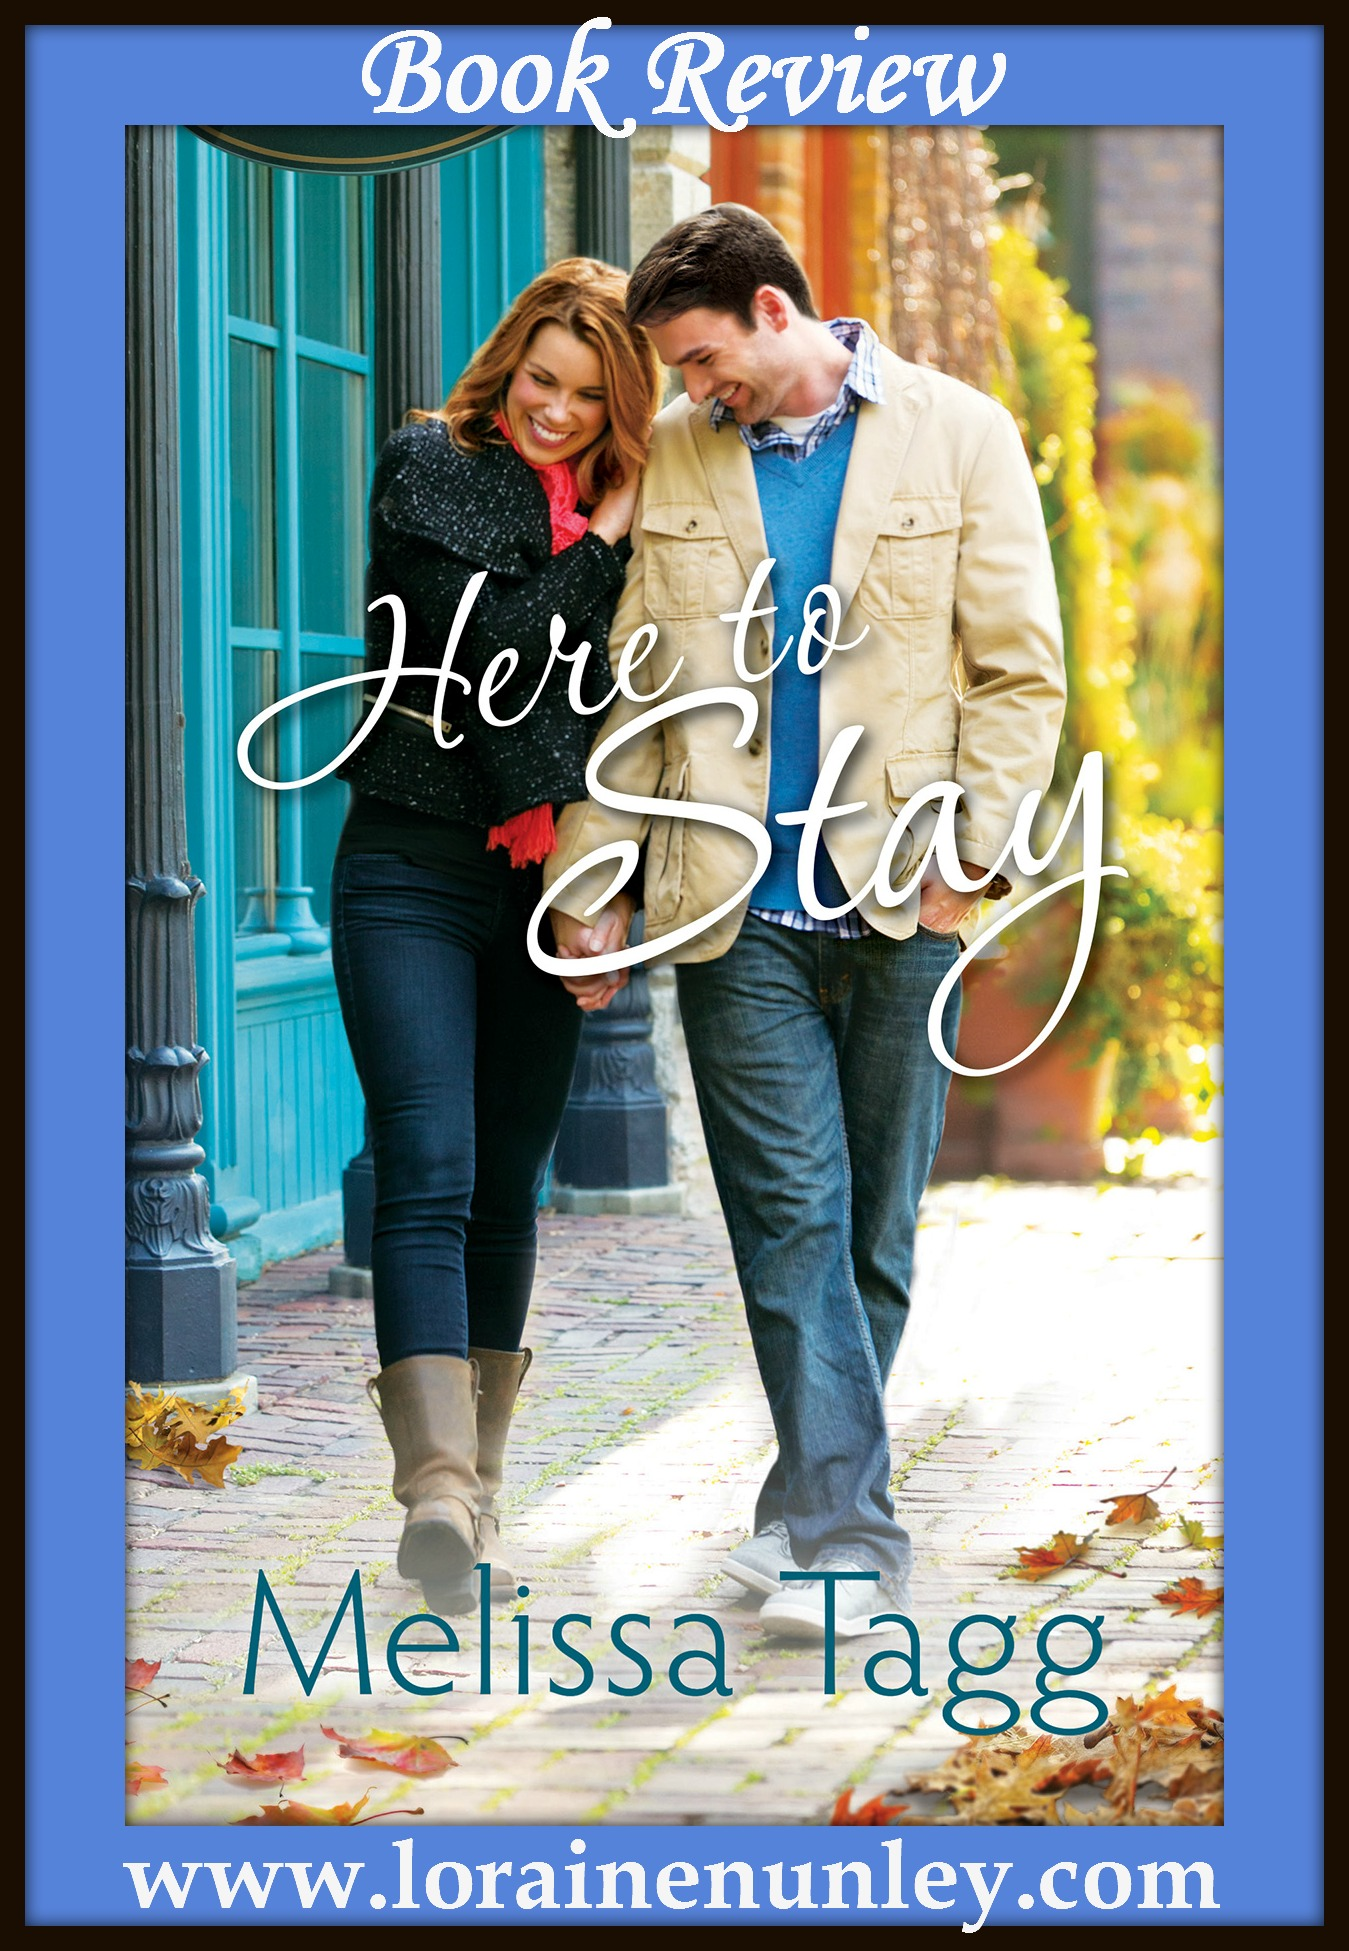 Book Review: Here to Stay by Melissa Tagg